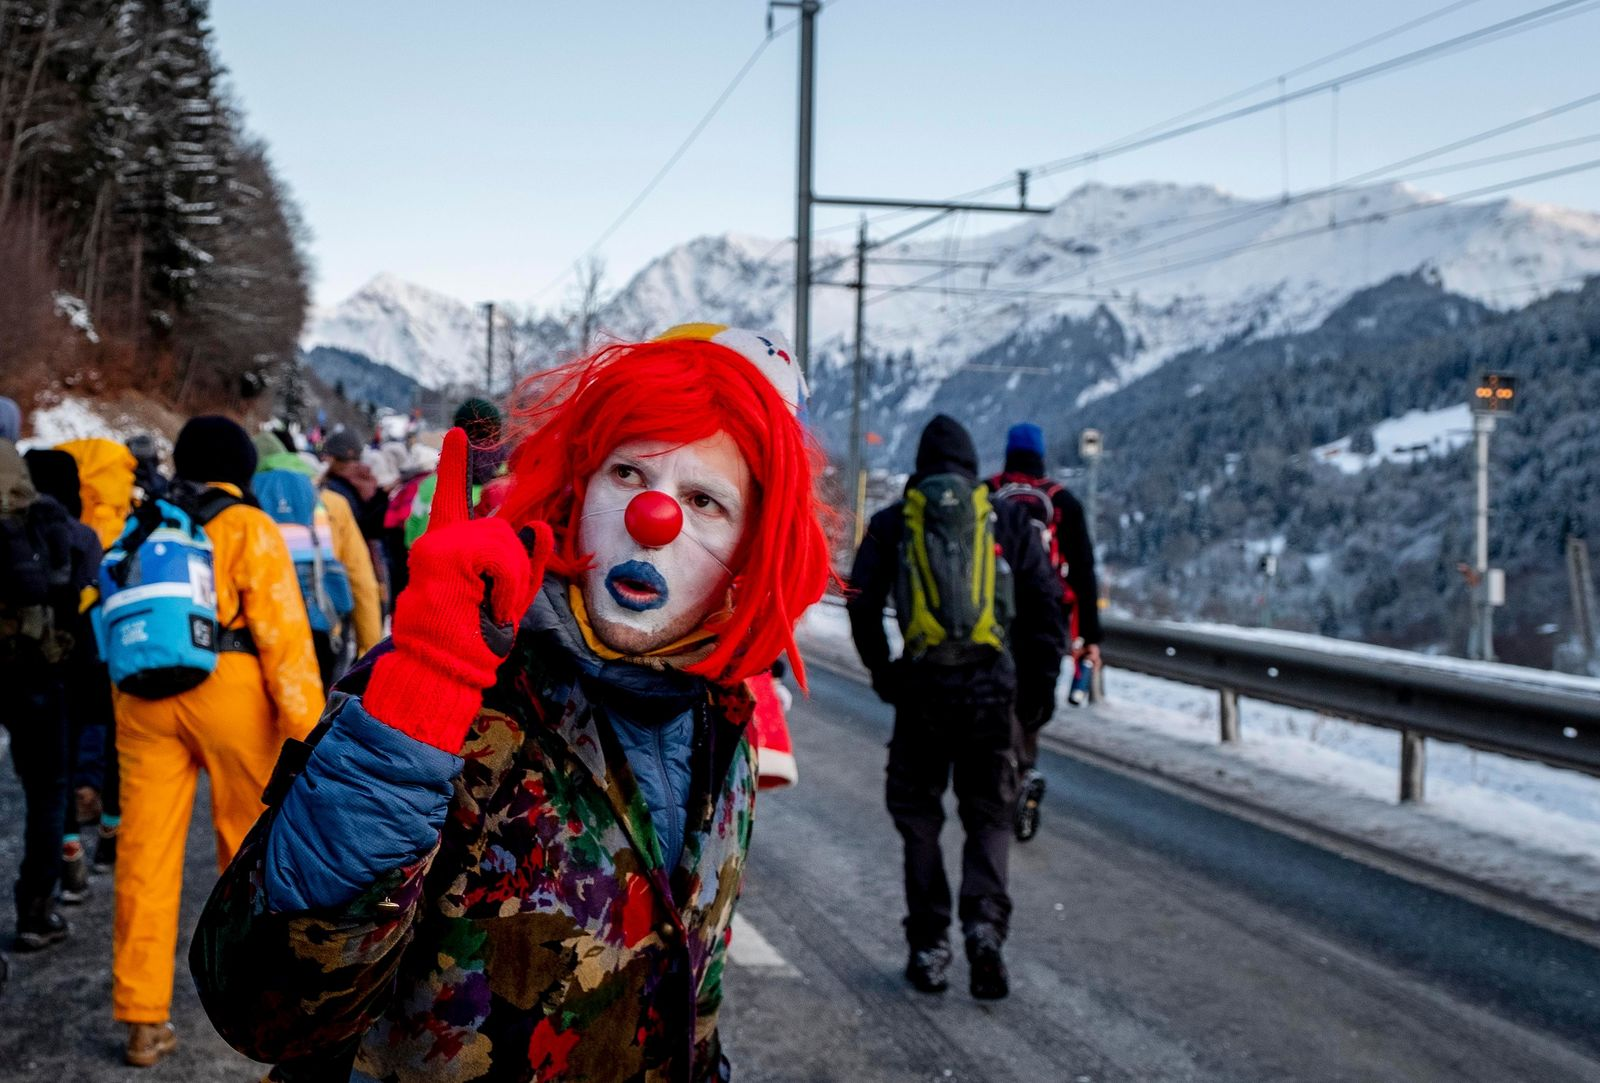 A man dressed as a clown is part of hundreds of climate protesters who are on a three-day  protest march from Landquart (AP Photo/Michael Probst)